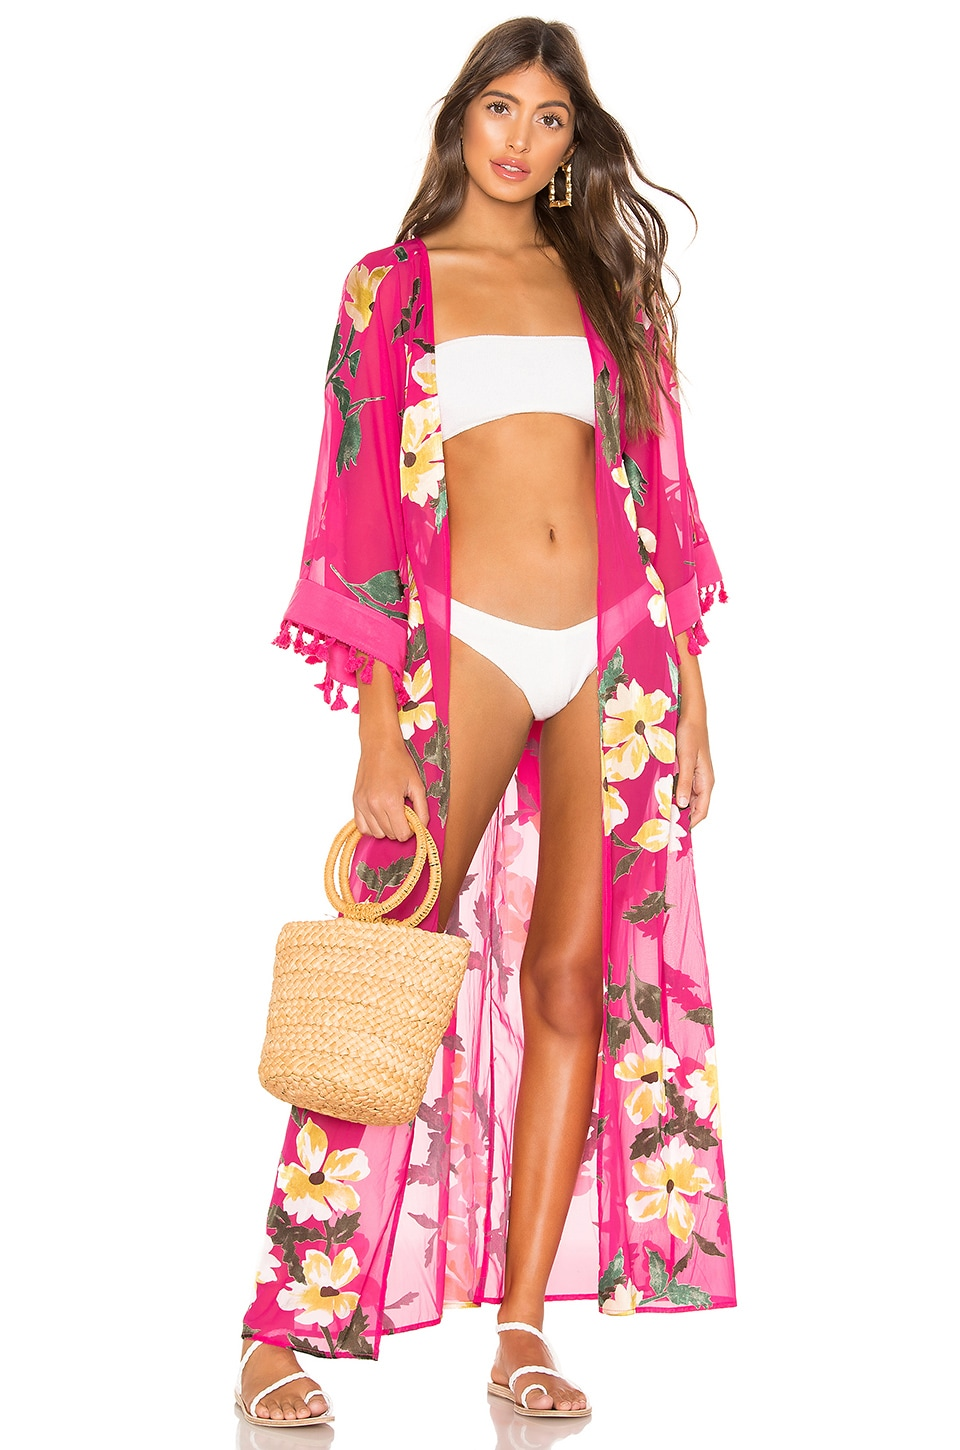 lovewave Hallie Maxi Robe in Pixie Floral